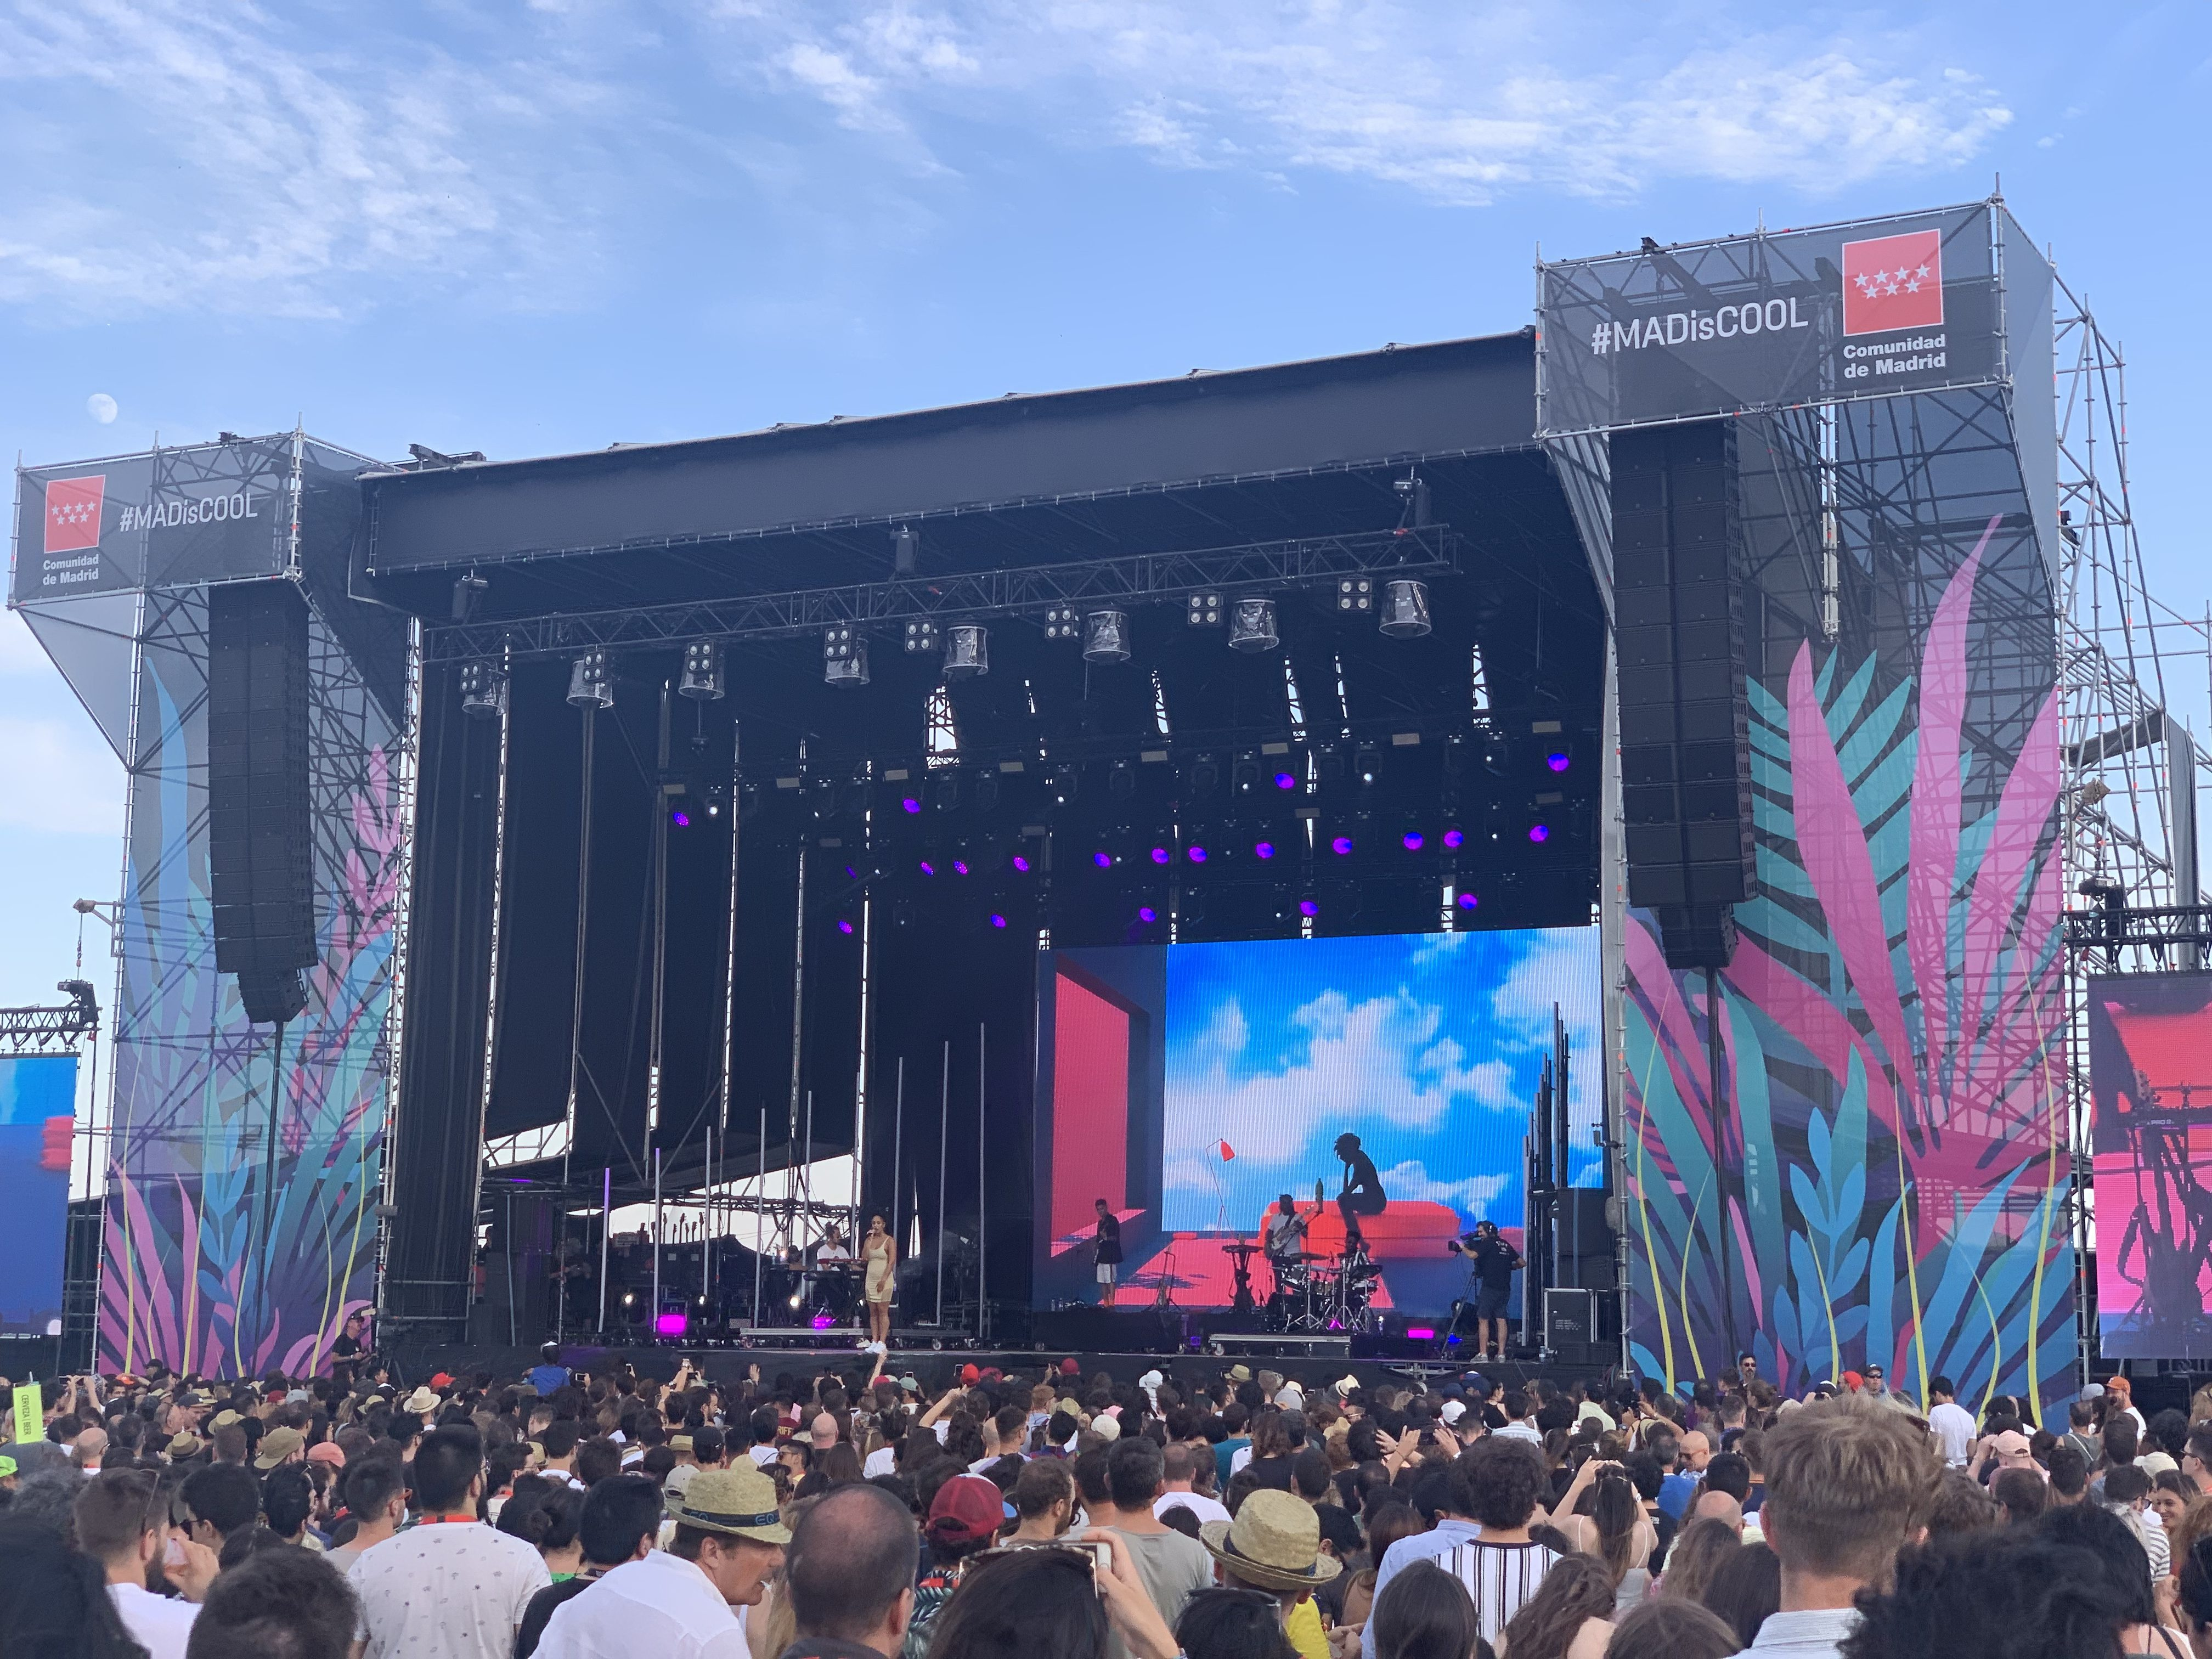 Jorja Smith opened the final day with an uplifting set.